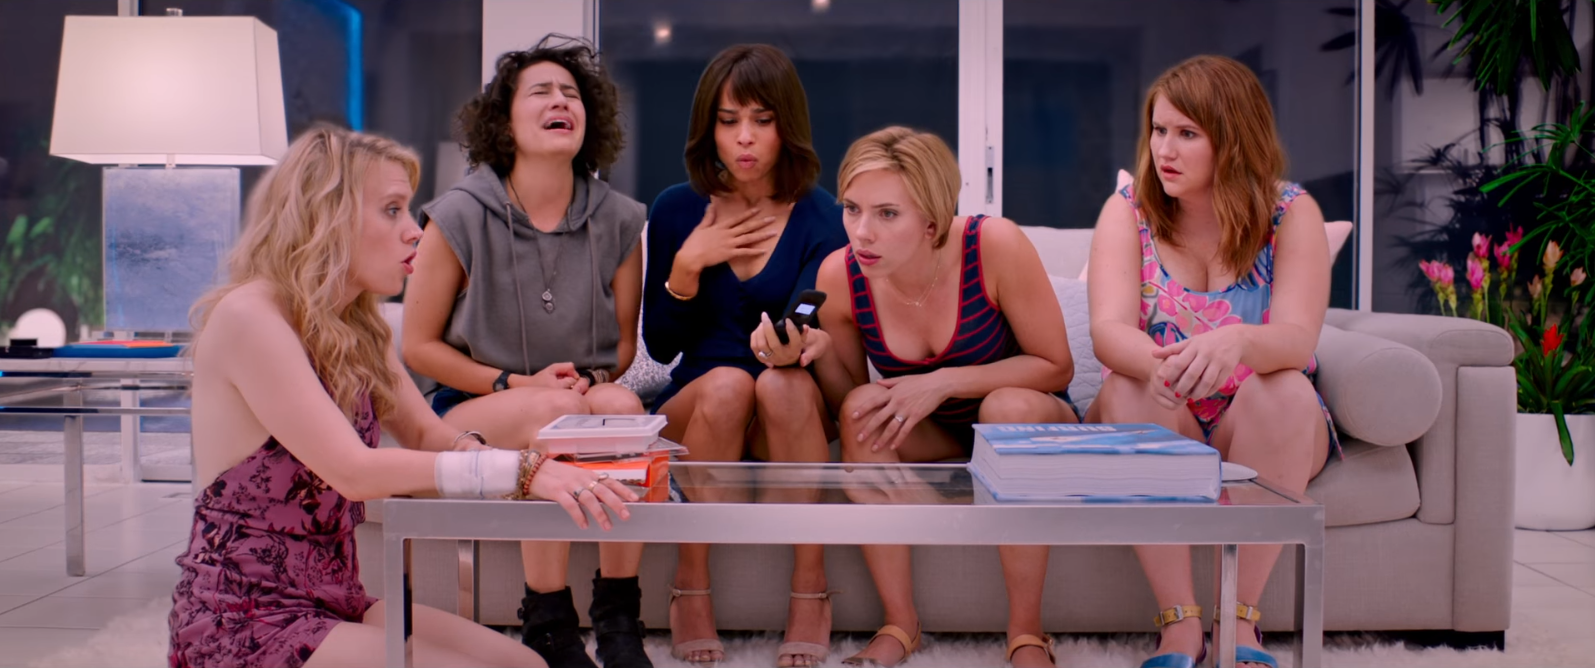 Hollywood's leading ladies kill accidentally stripper in first trailer for 'Rough Night'